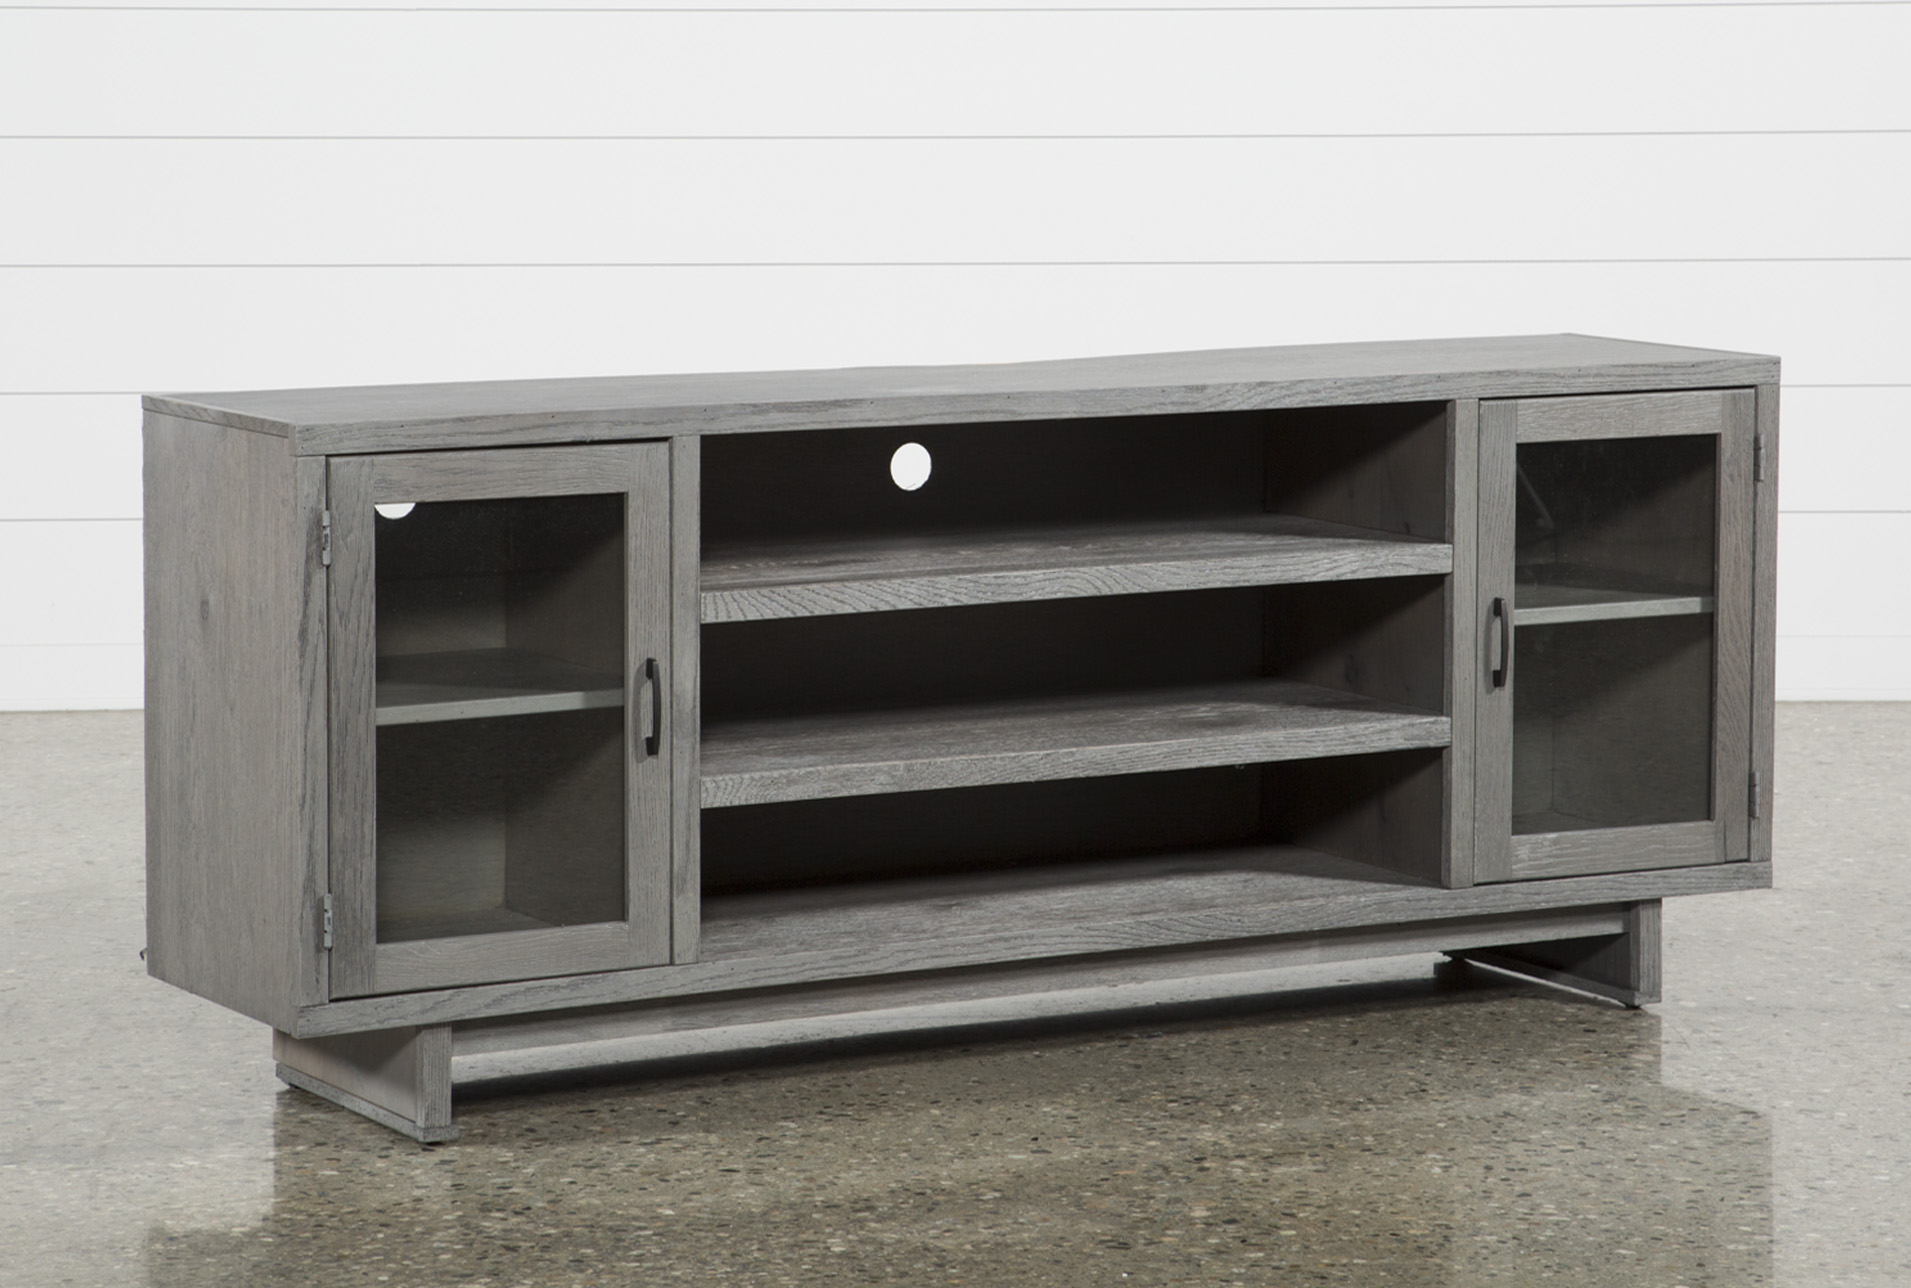 Melrose Titanium 74 Inch Tv Stand, Grey | House | Pinterest for Sinclair Grey 54 Inch Tv Stands (Image 16 of 30)